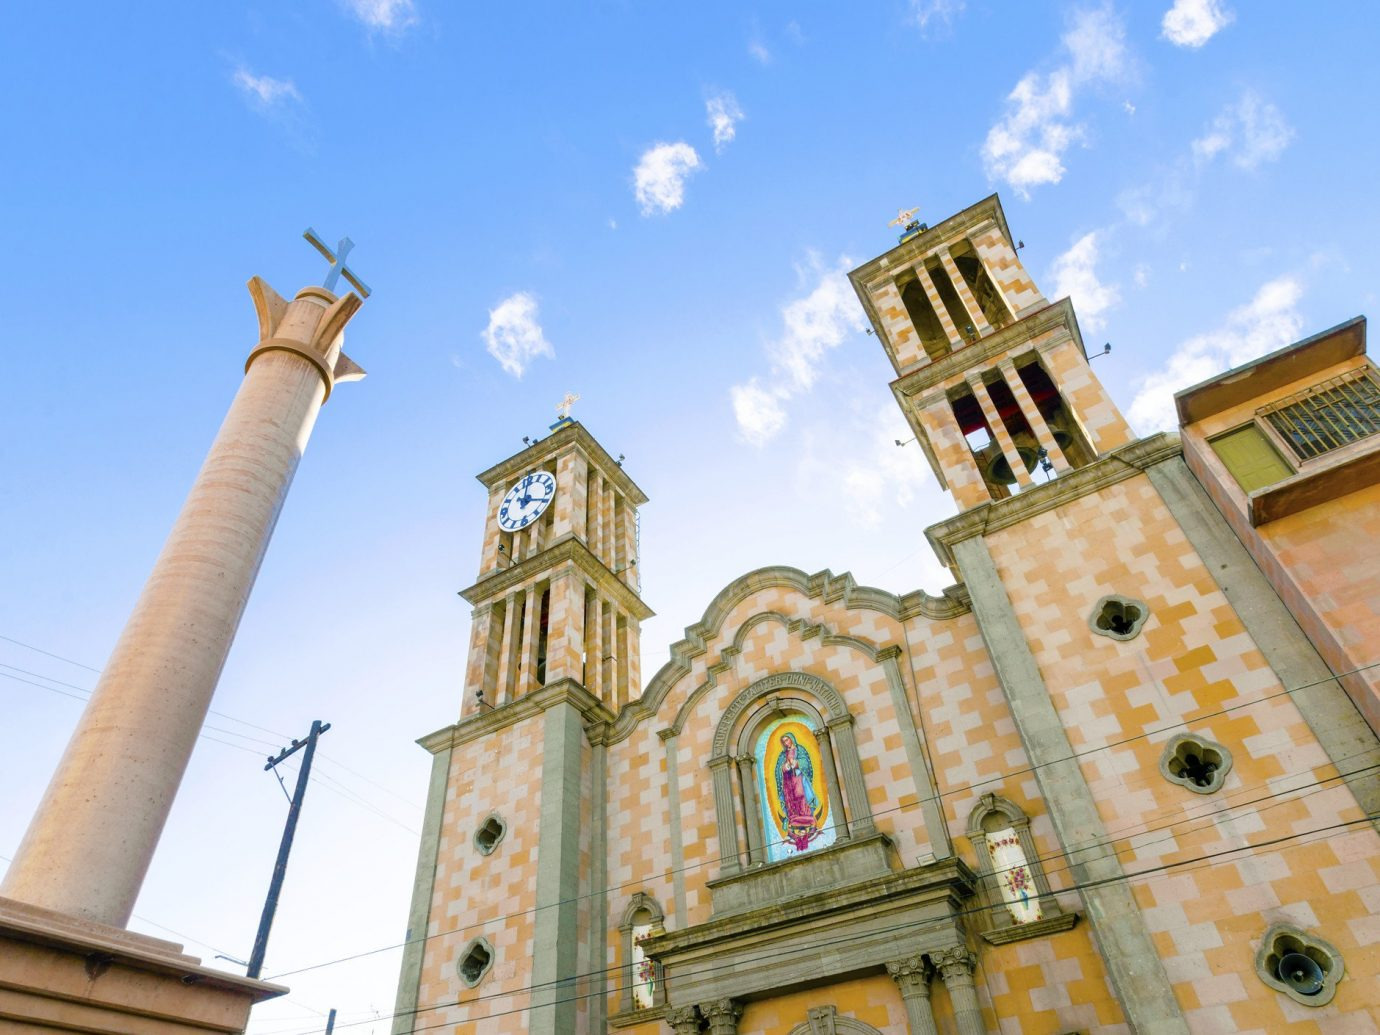 Trip Ideas sky building outdoor landmark Church place of worship tower cathedral City steeple facade basilica bell tower